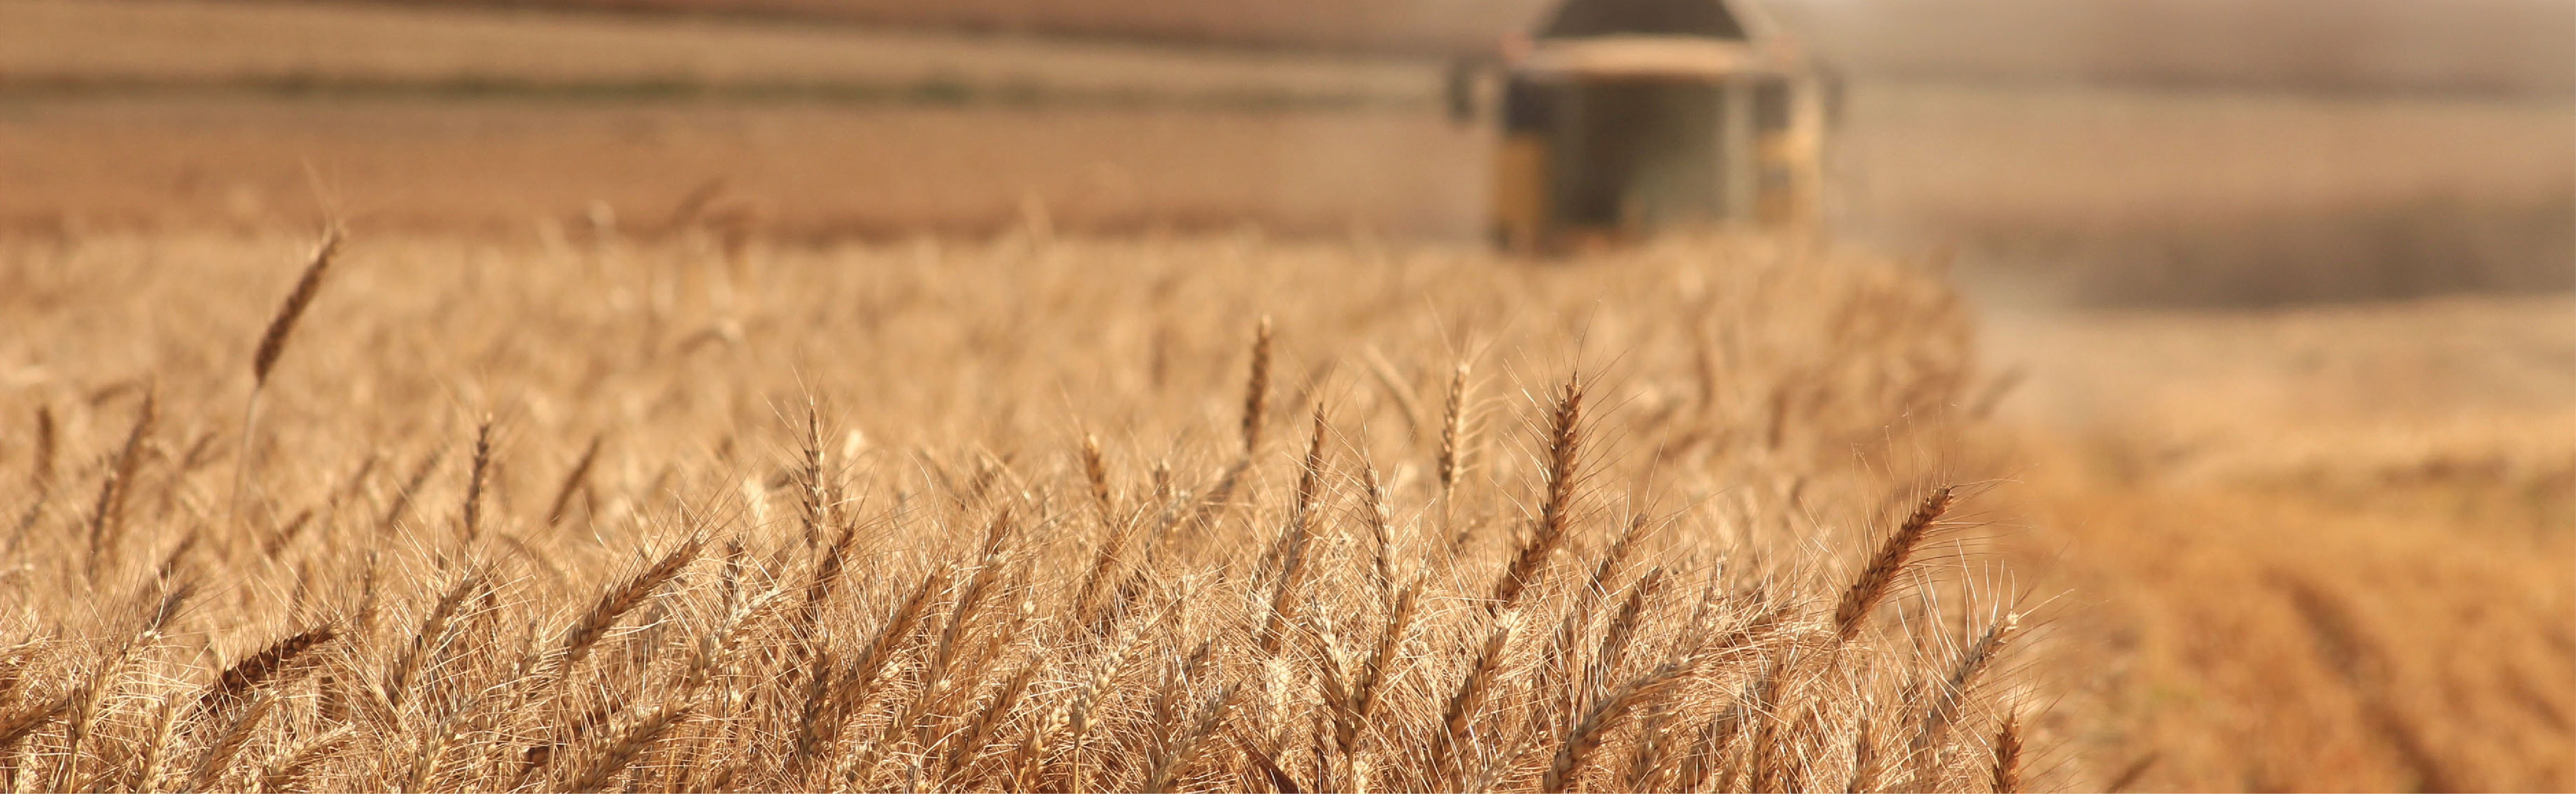 shallow depth of field of wheat field with combine in background